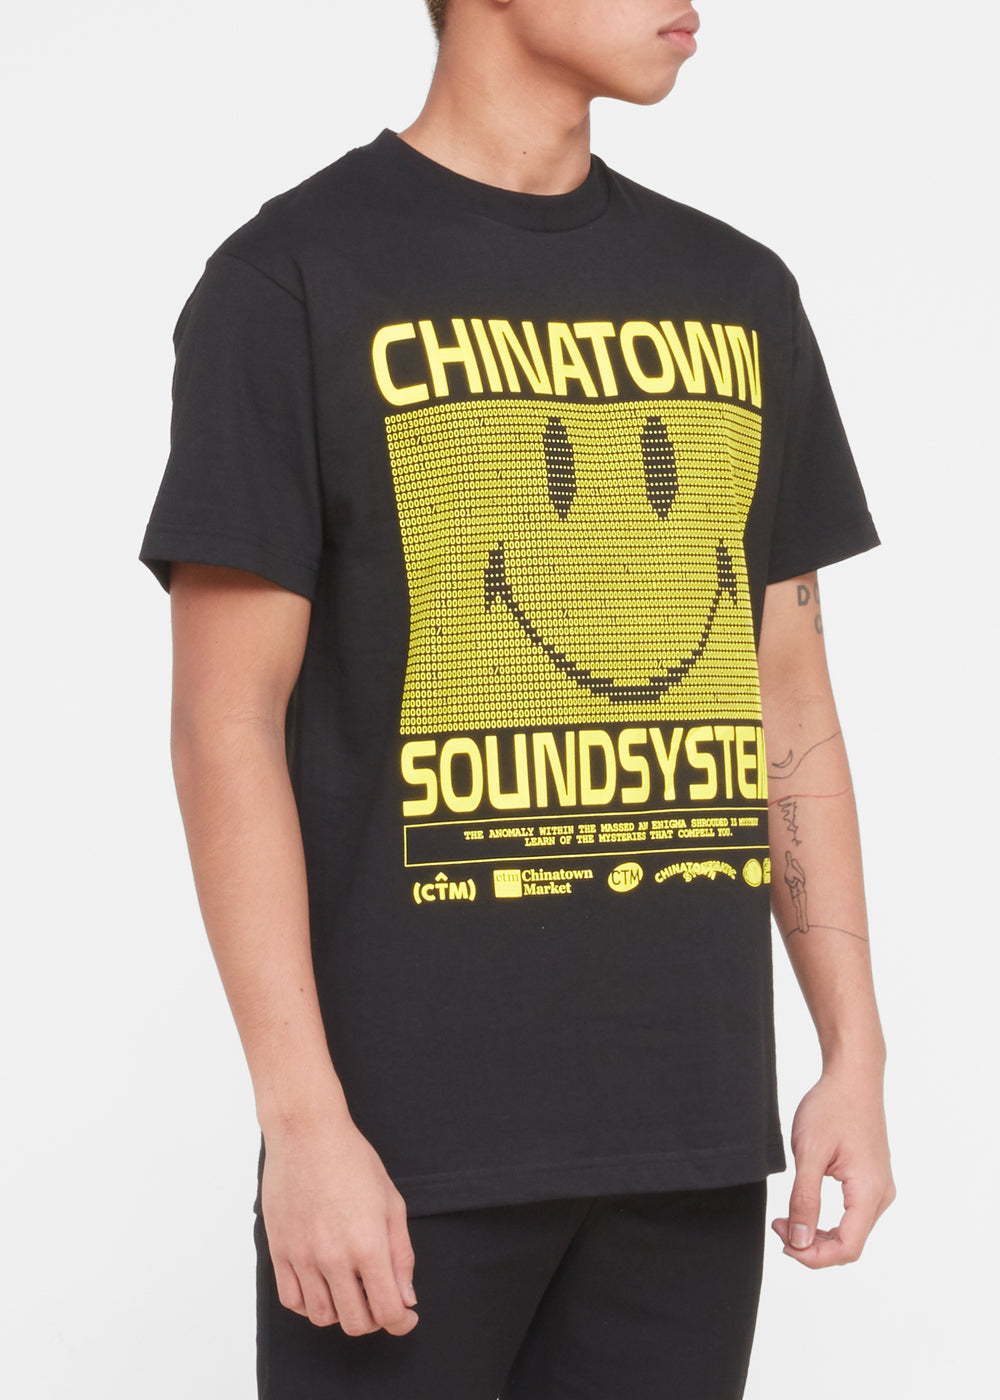 sound-system-tee-ctmhol19-sst-blk-blk-2